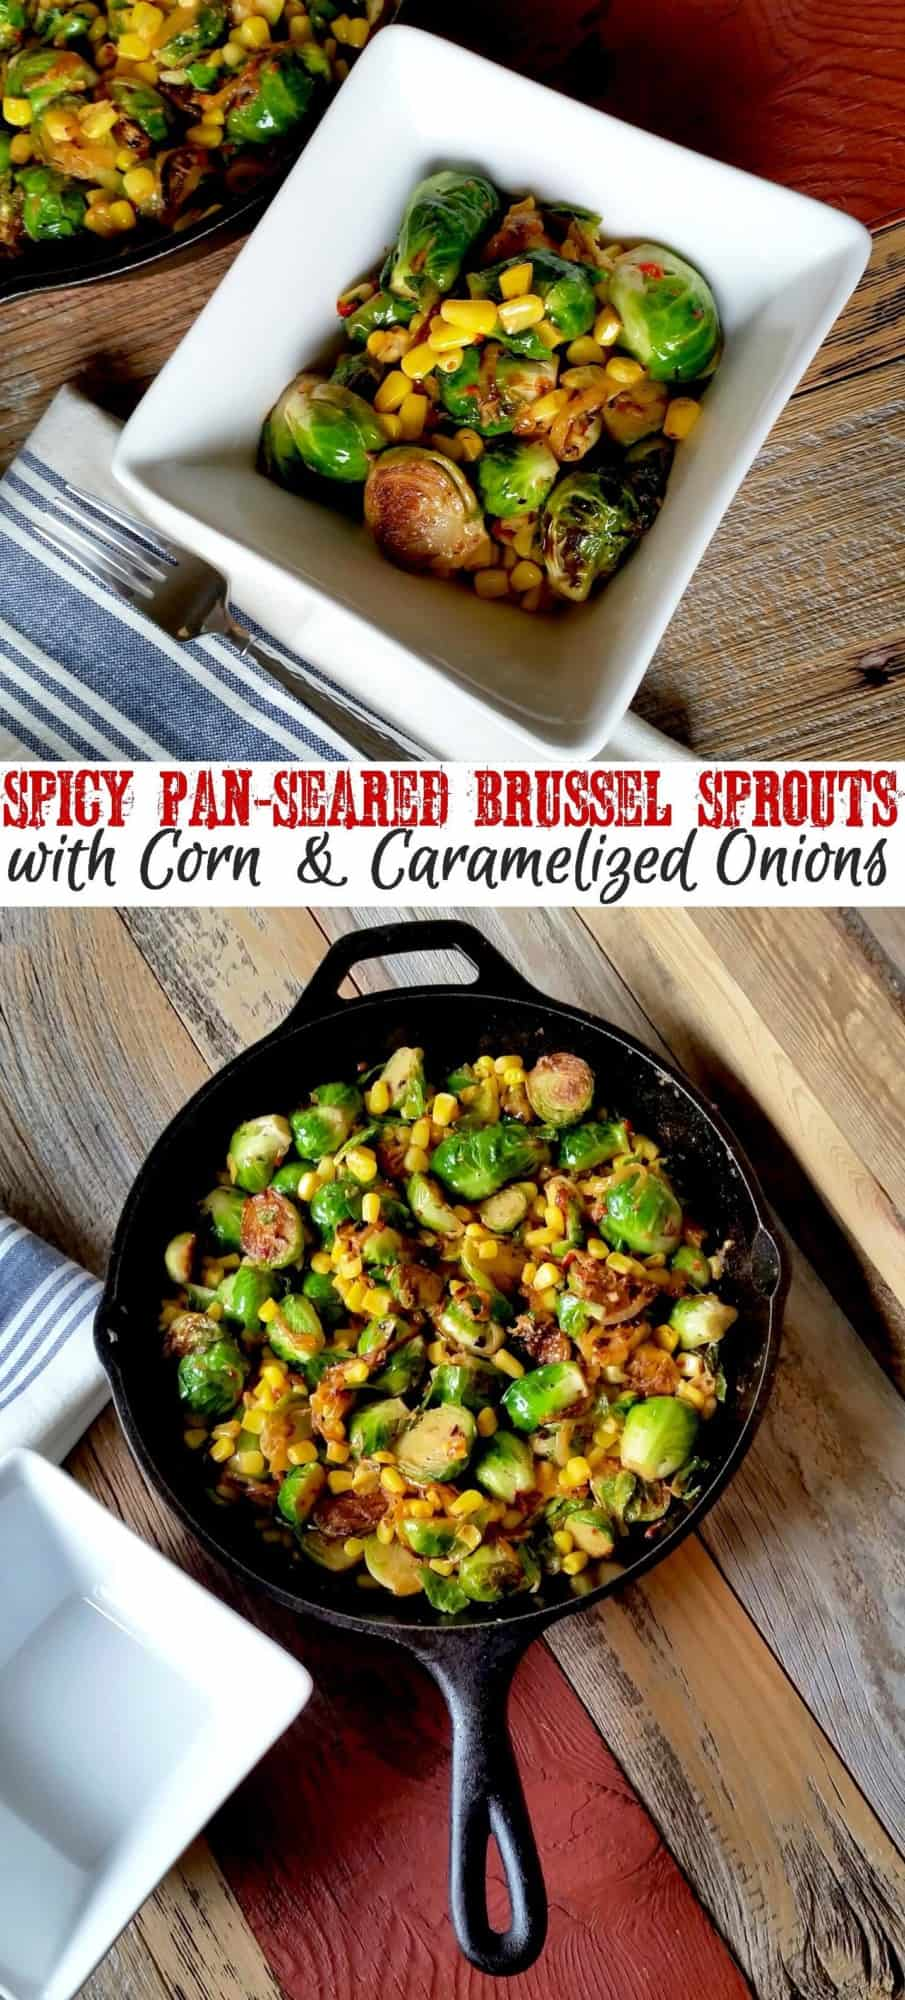 Spicy Pan-Seared Brussel Sprouts with Caramelized Onions and Corn